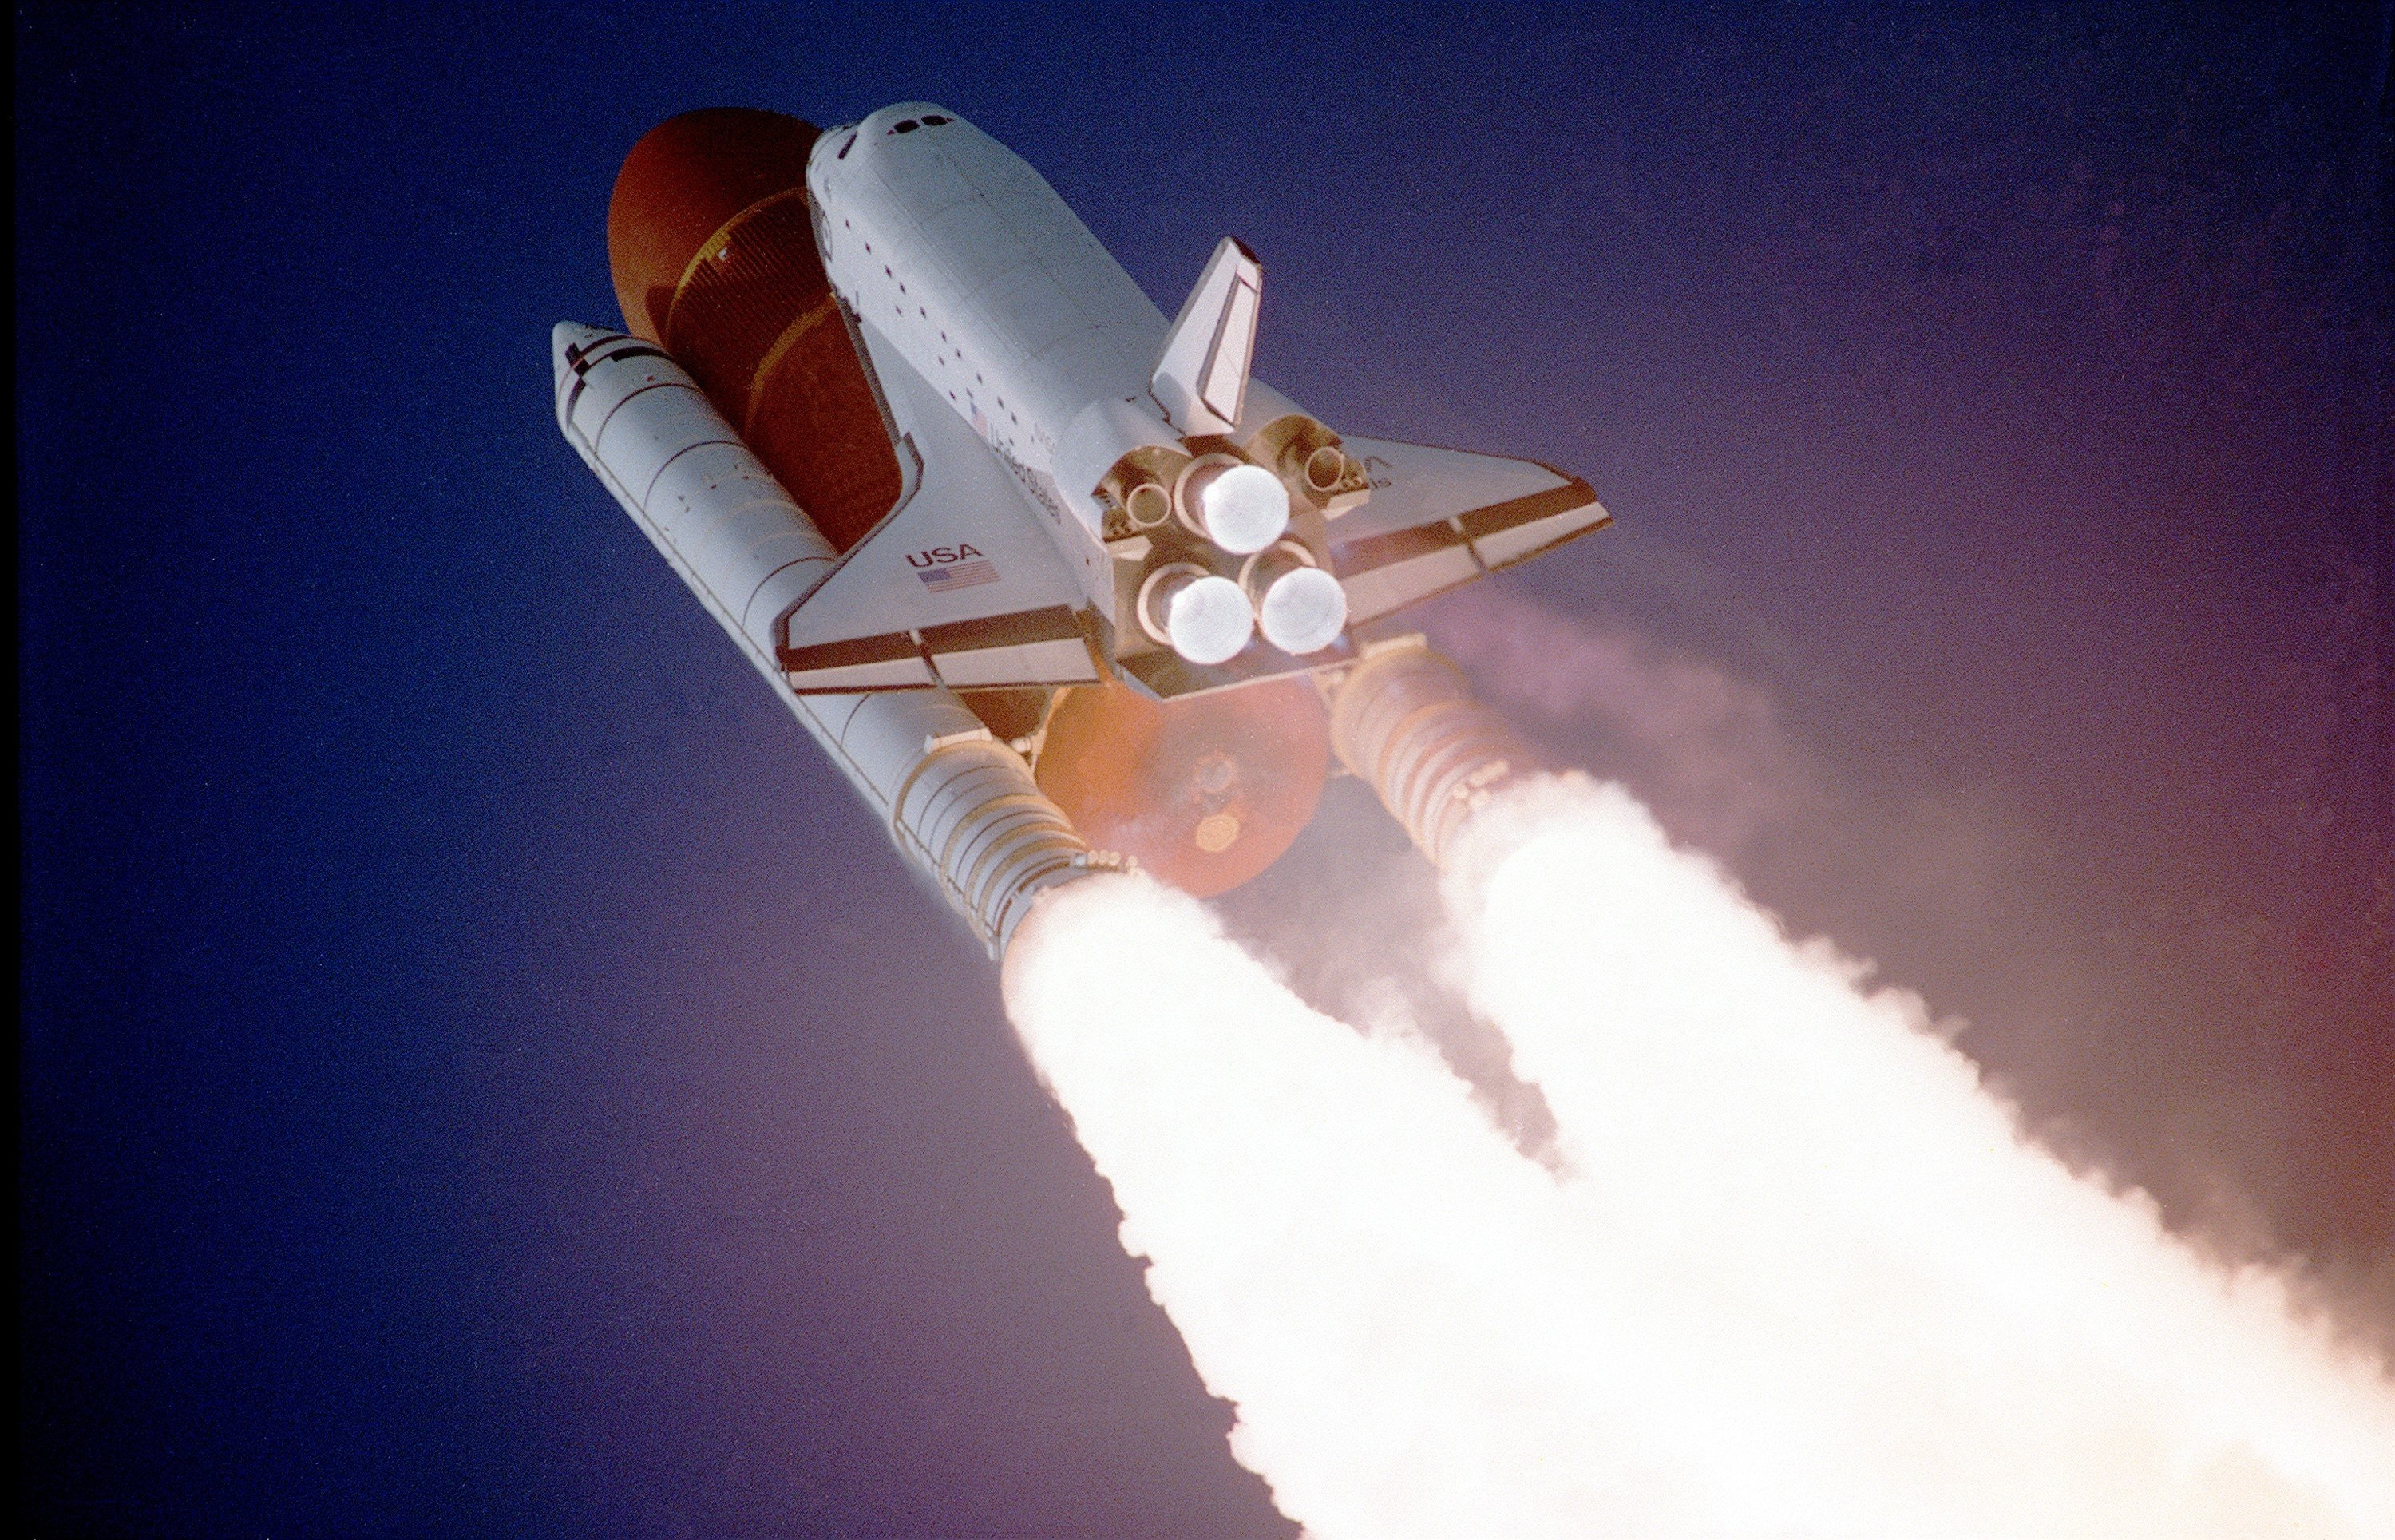 Image of space shuttle blasting upward gives visual of boosting profits when trading stocks online.